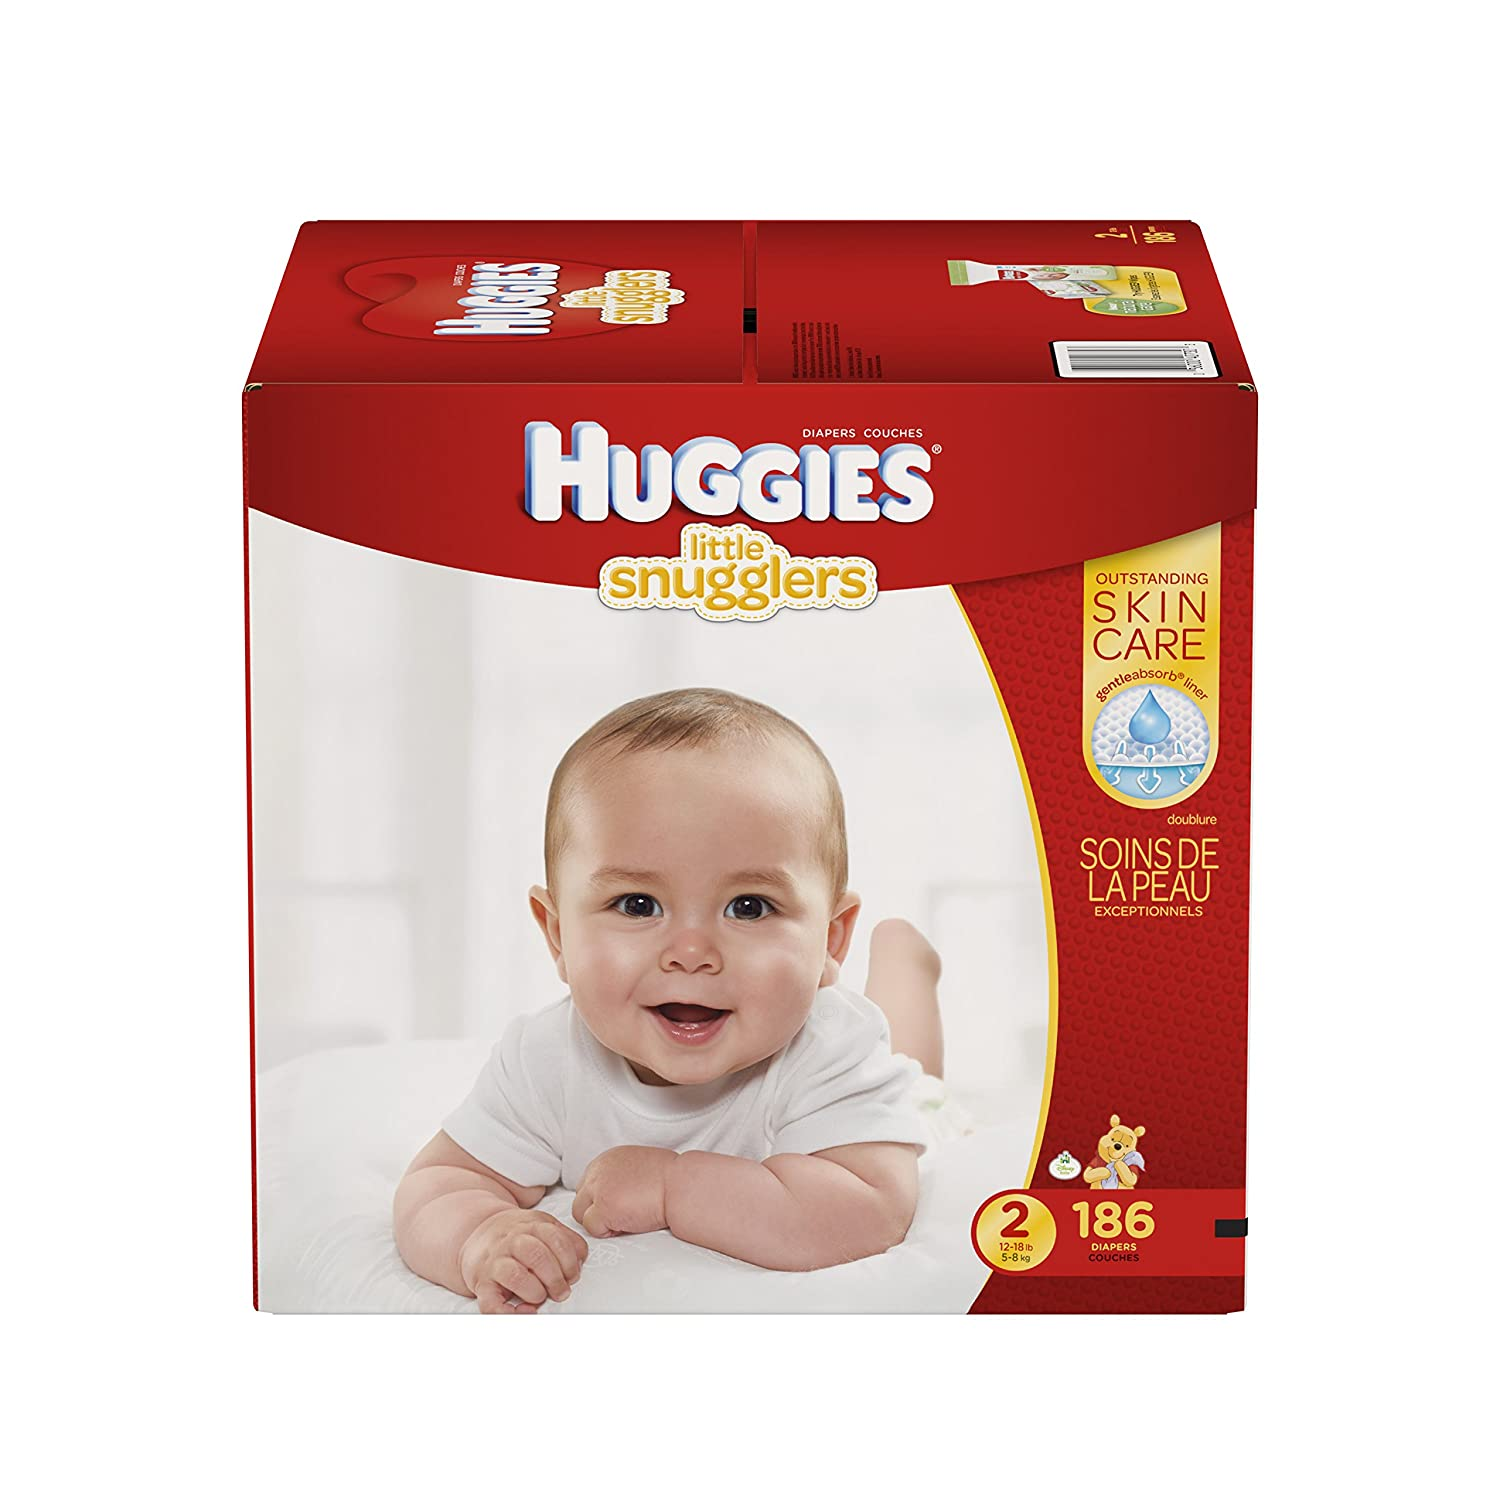 Huggies Little Snugglers Baby Diapers, Size 2, 186 Count (Packaging May Vary)